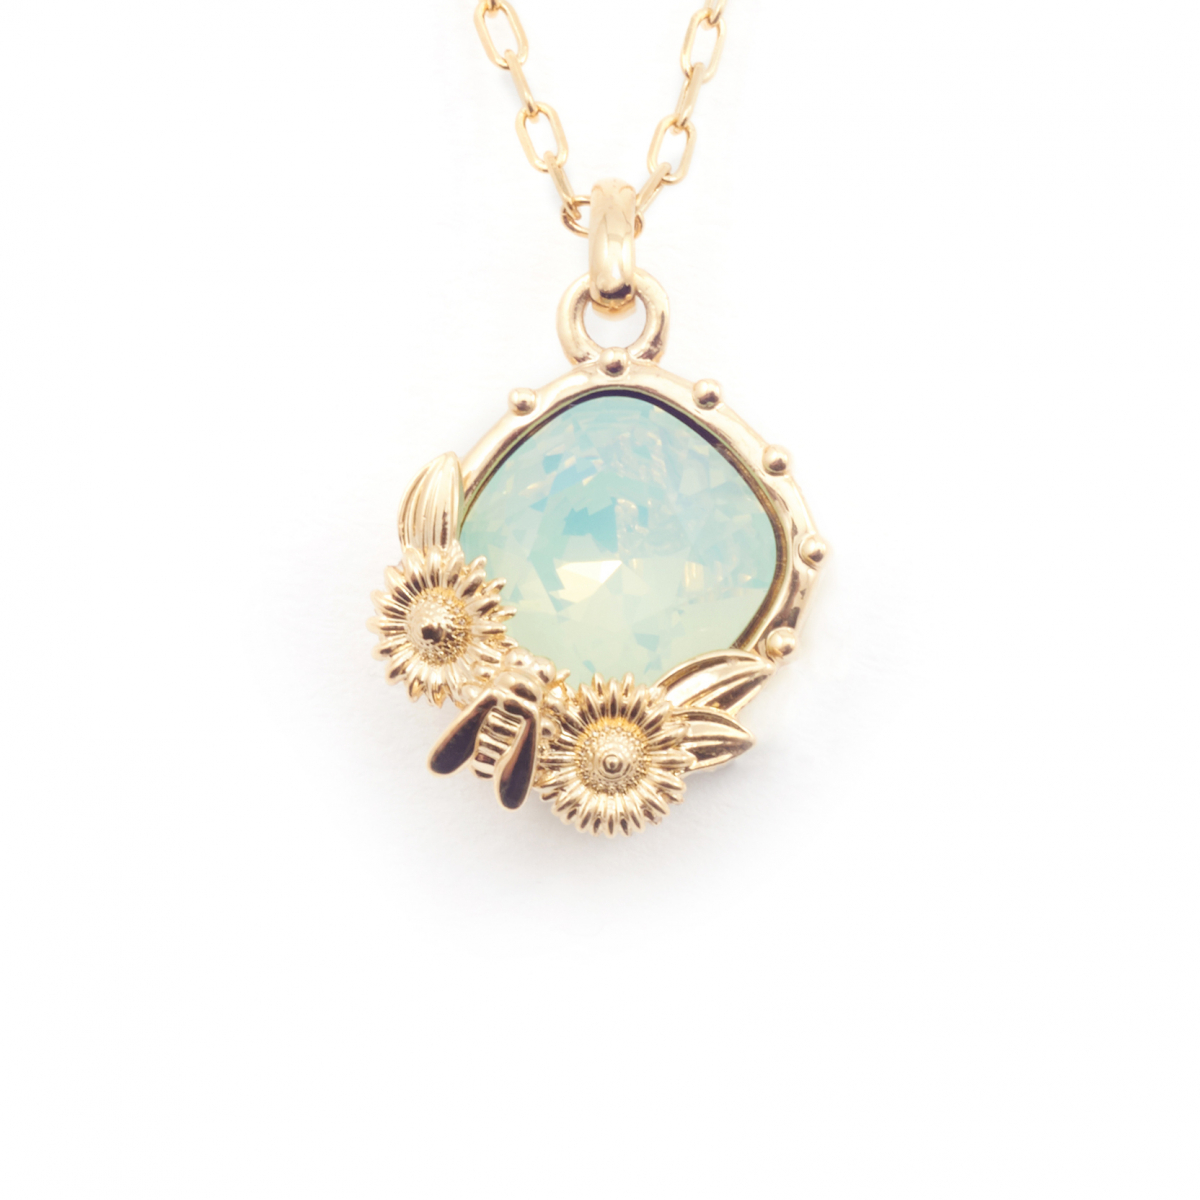 Birthstone Necklace - October